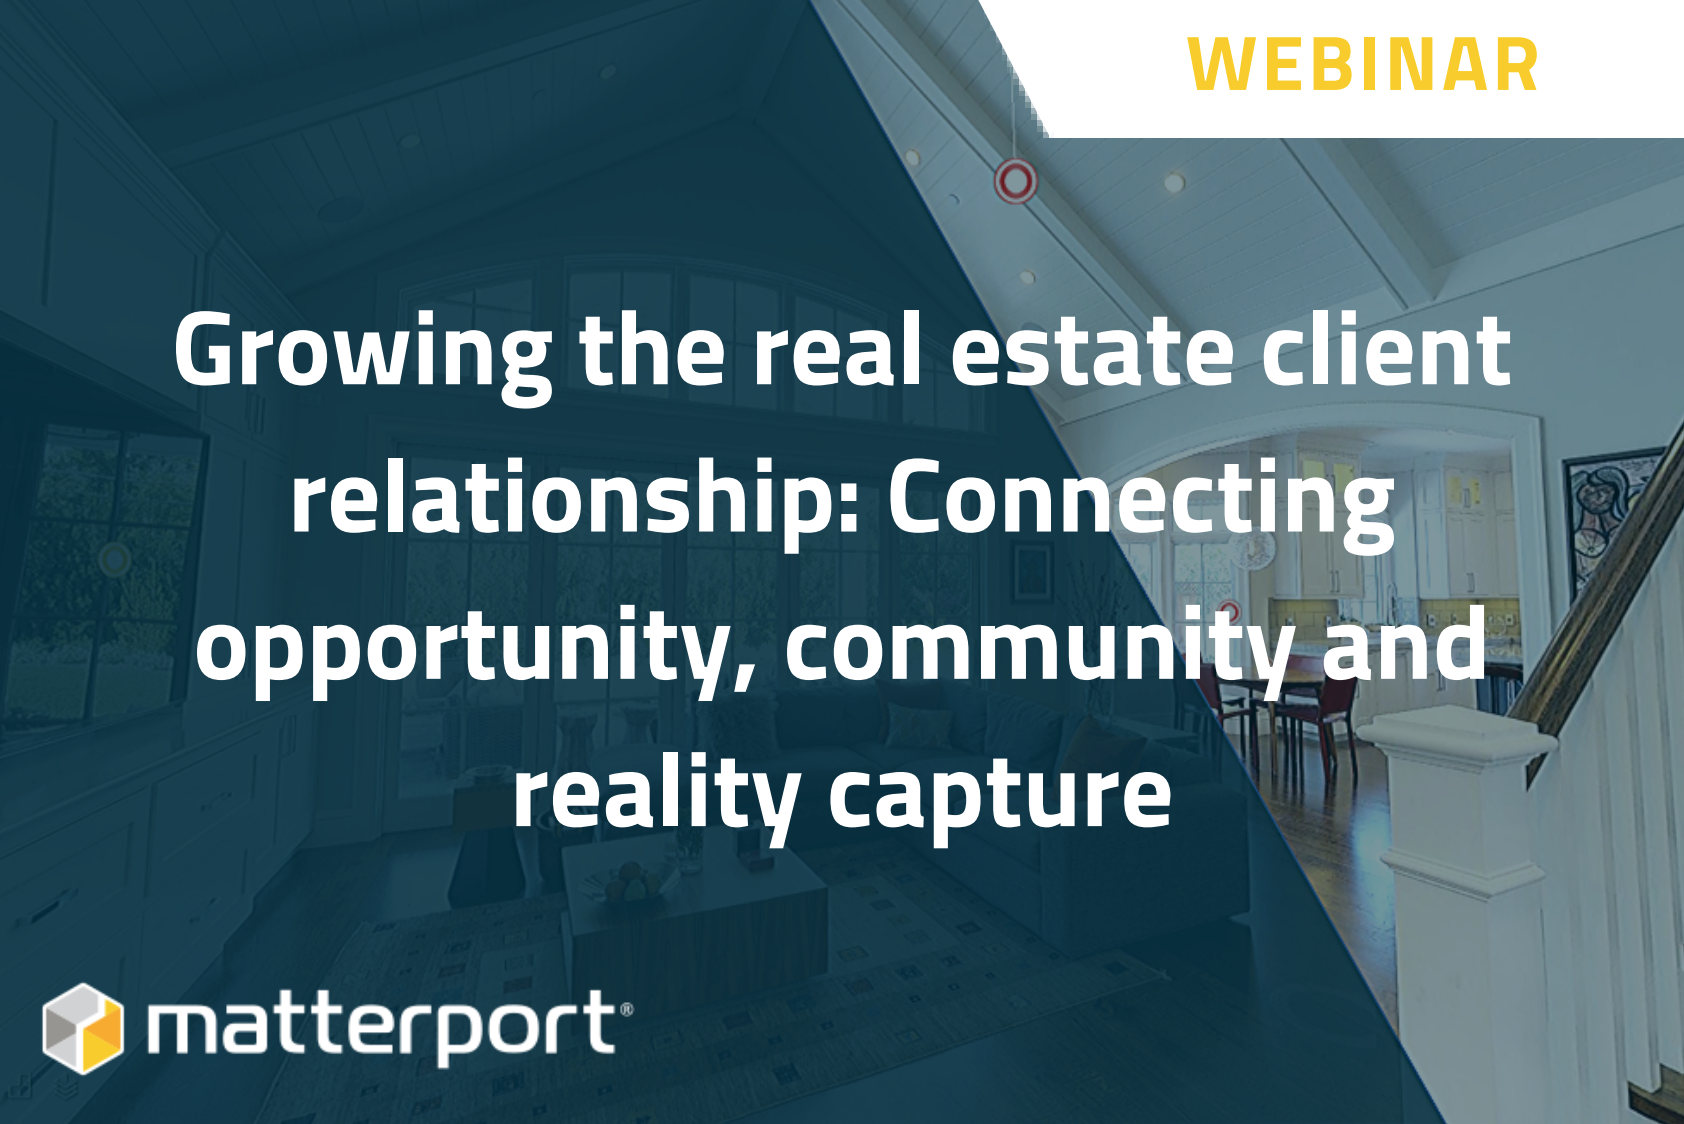 [On Demand Webinar] Growing the real estate client relationship